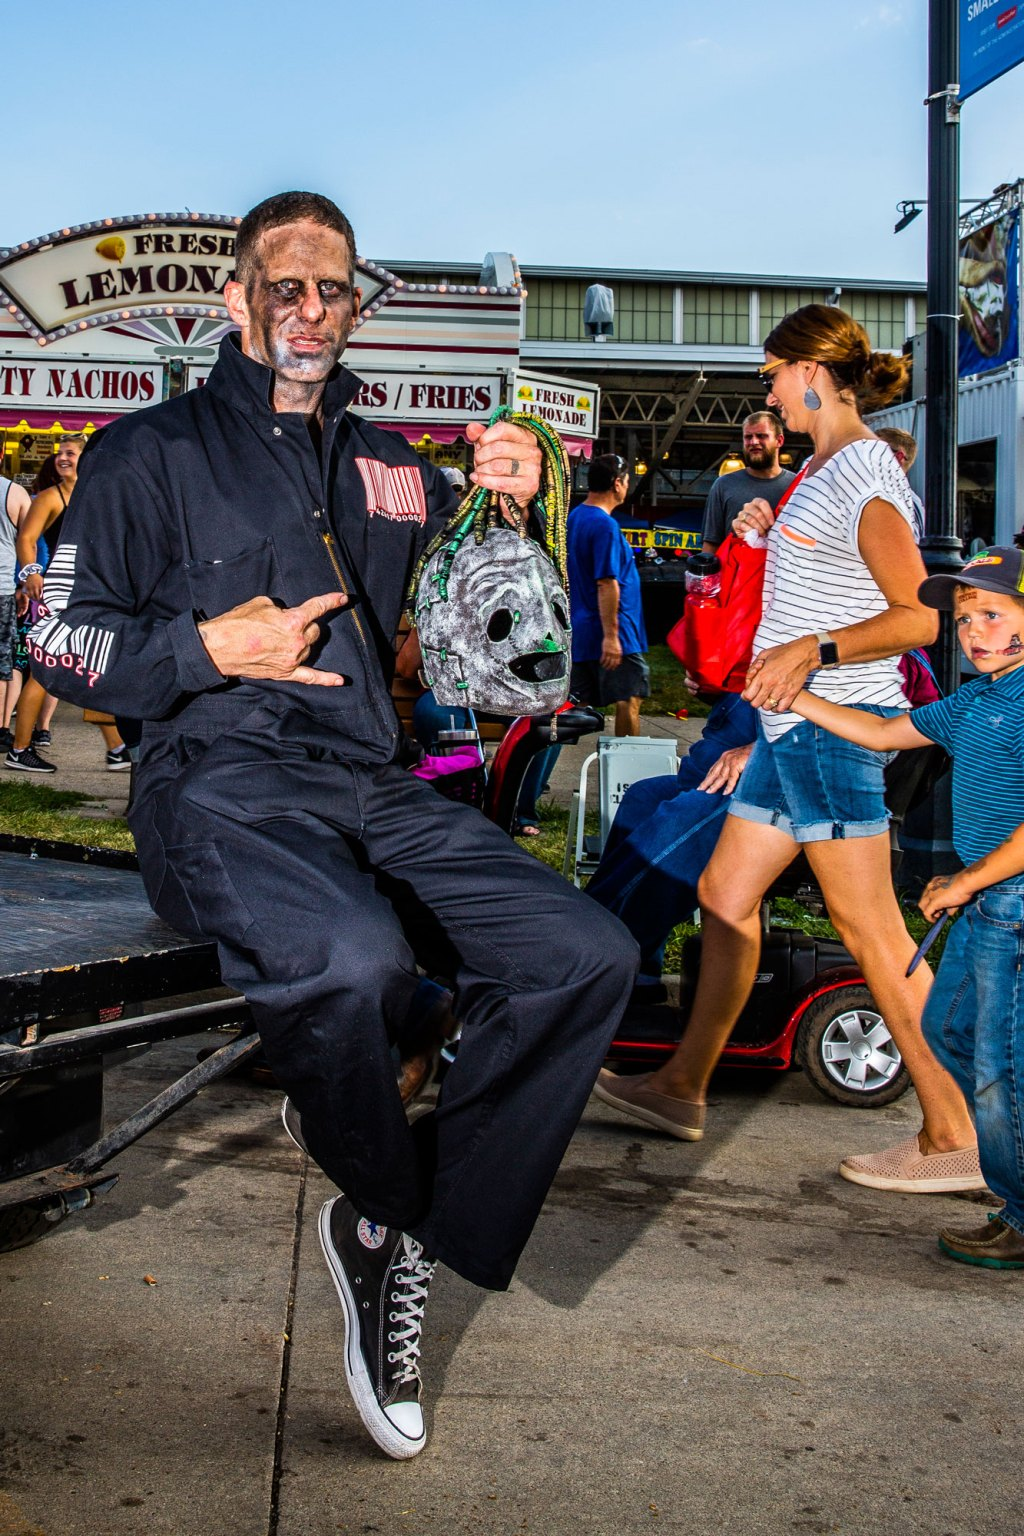 Chad Gross (from Oakland, California) sits on a golf cart before attending Slipknot's homecoming show at the Iowa State Fair in Des Moines, Iowa on August 10, 2019.